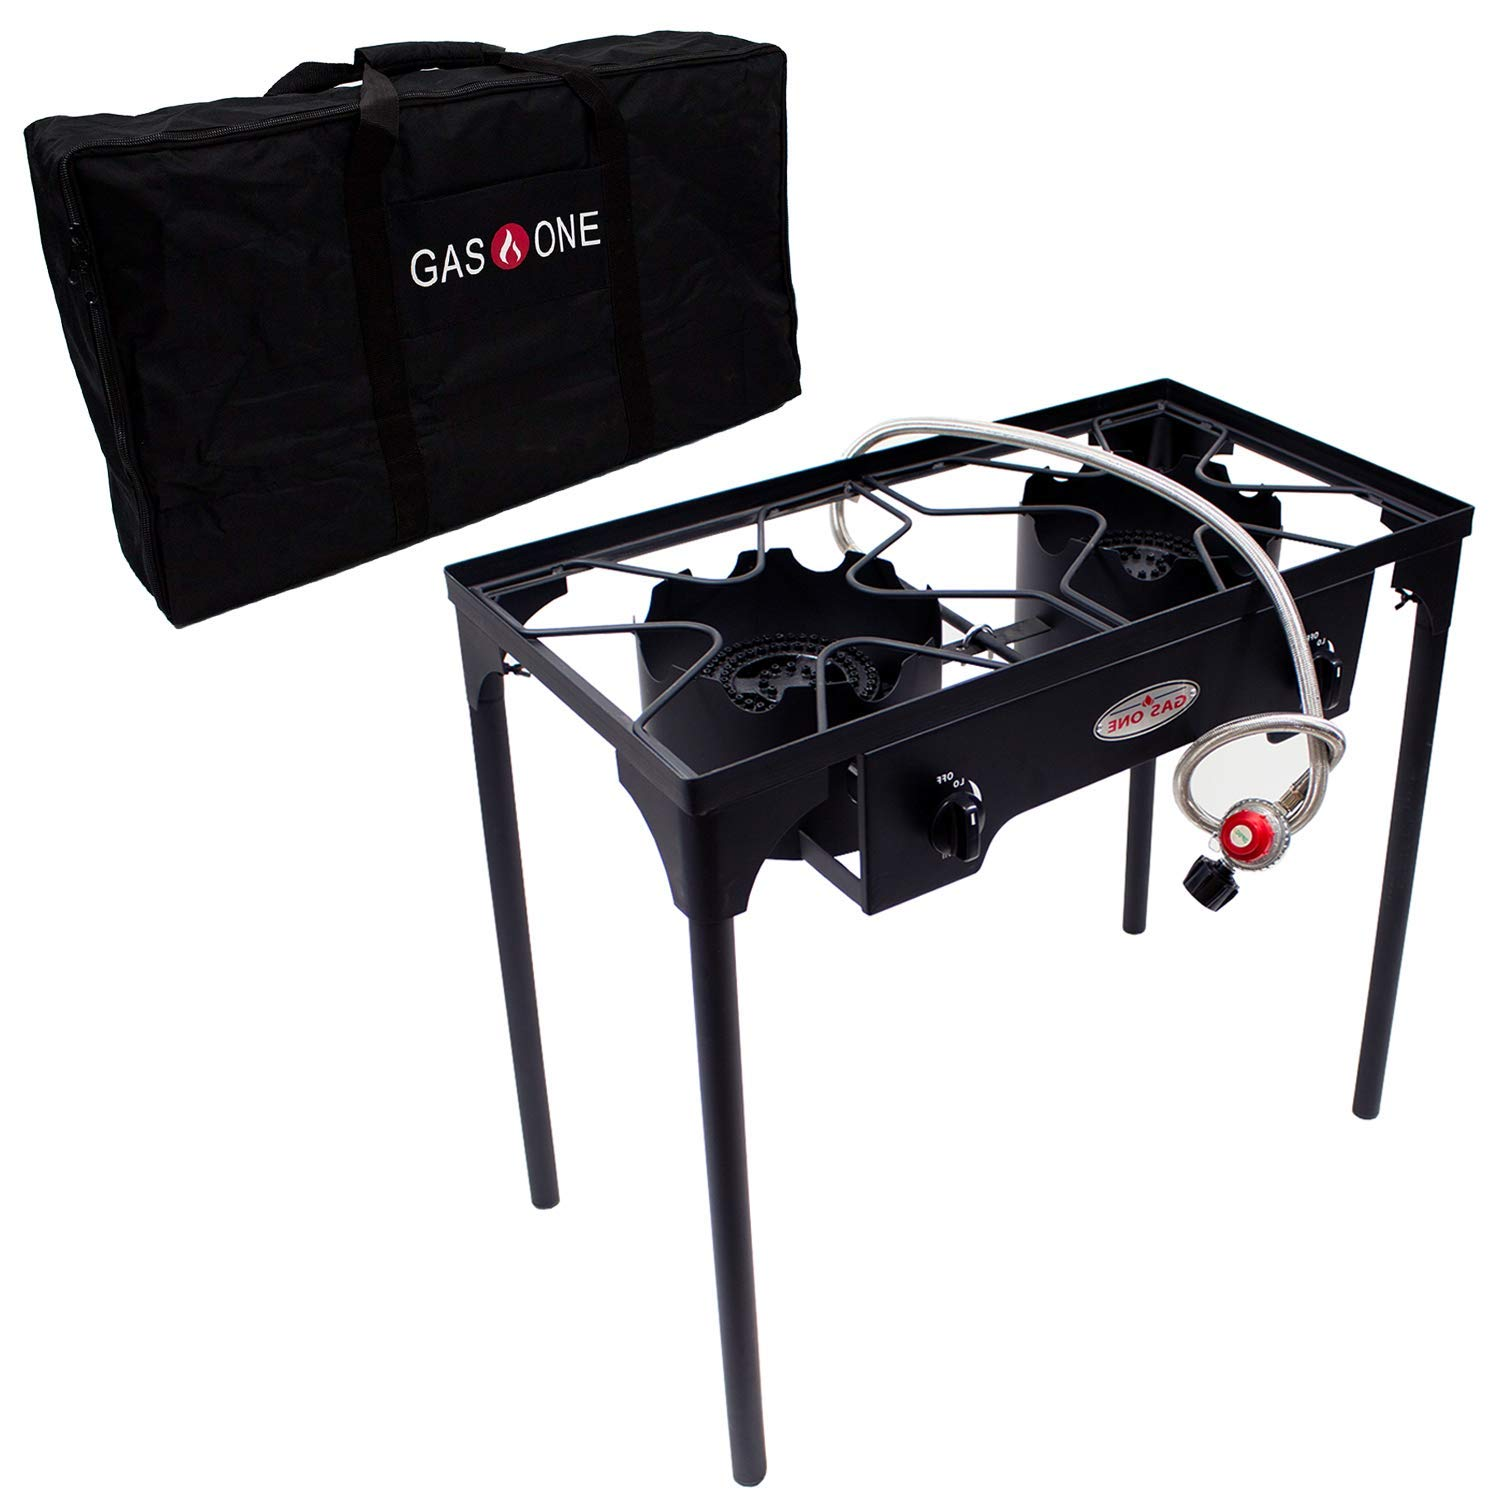 GasOne B-5000+50460 Propane Double Burner & Carry Bag 2 Burner Gas Stove Outdoor by GasOne